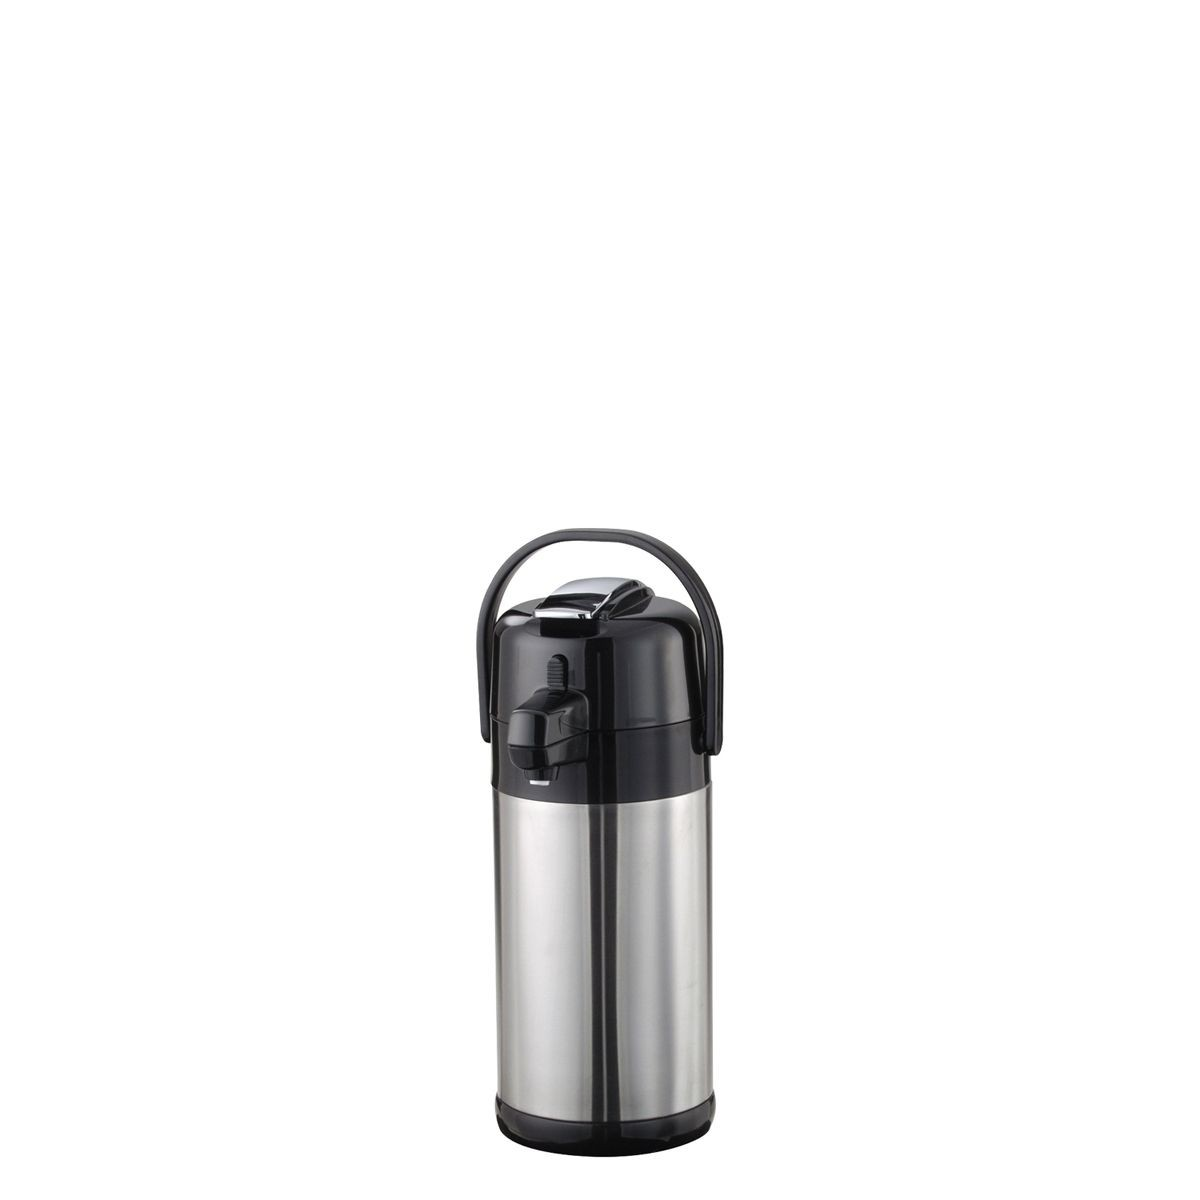 Service Ideas SECAL19S Airpot with Interchangeable Lever Lid, 1.9 Liter